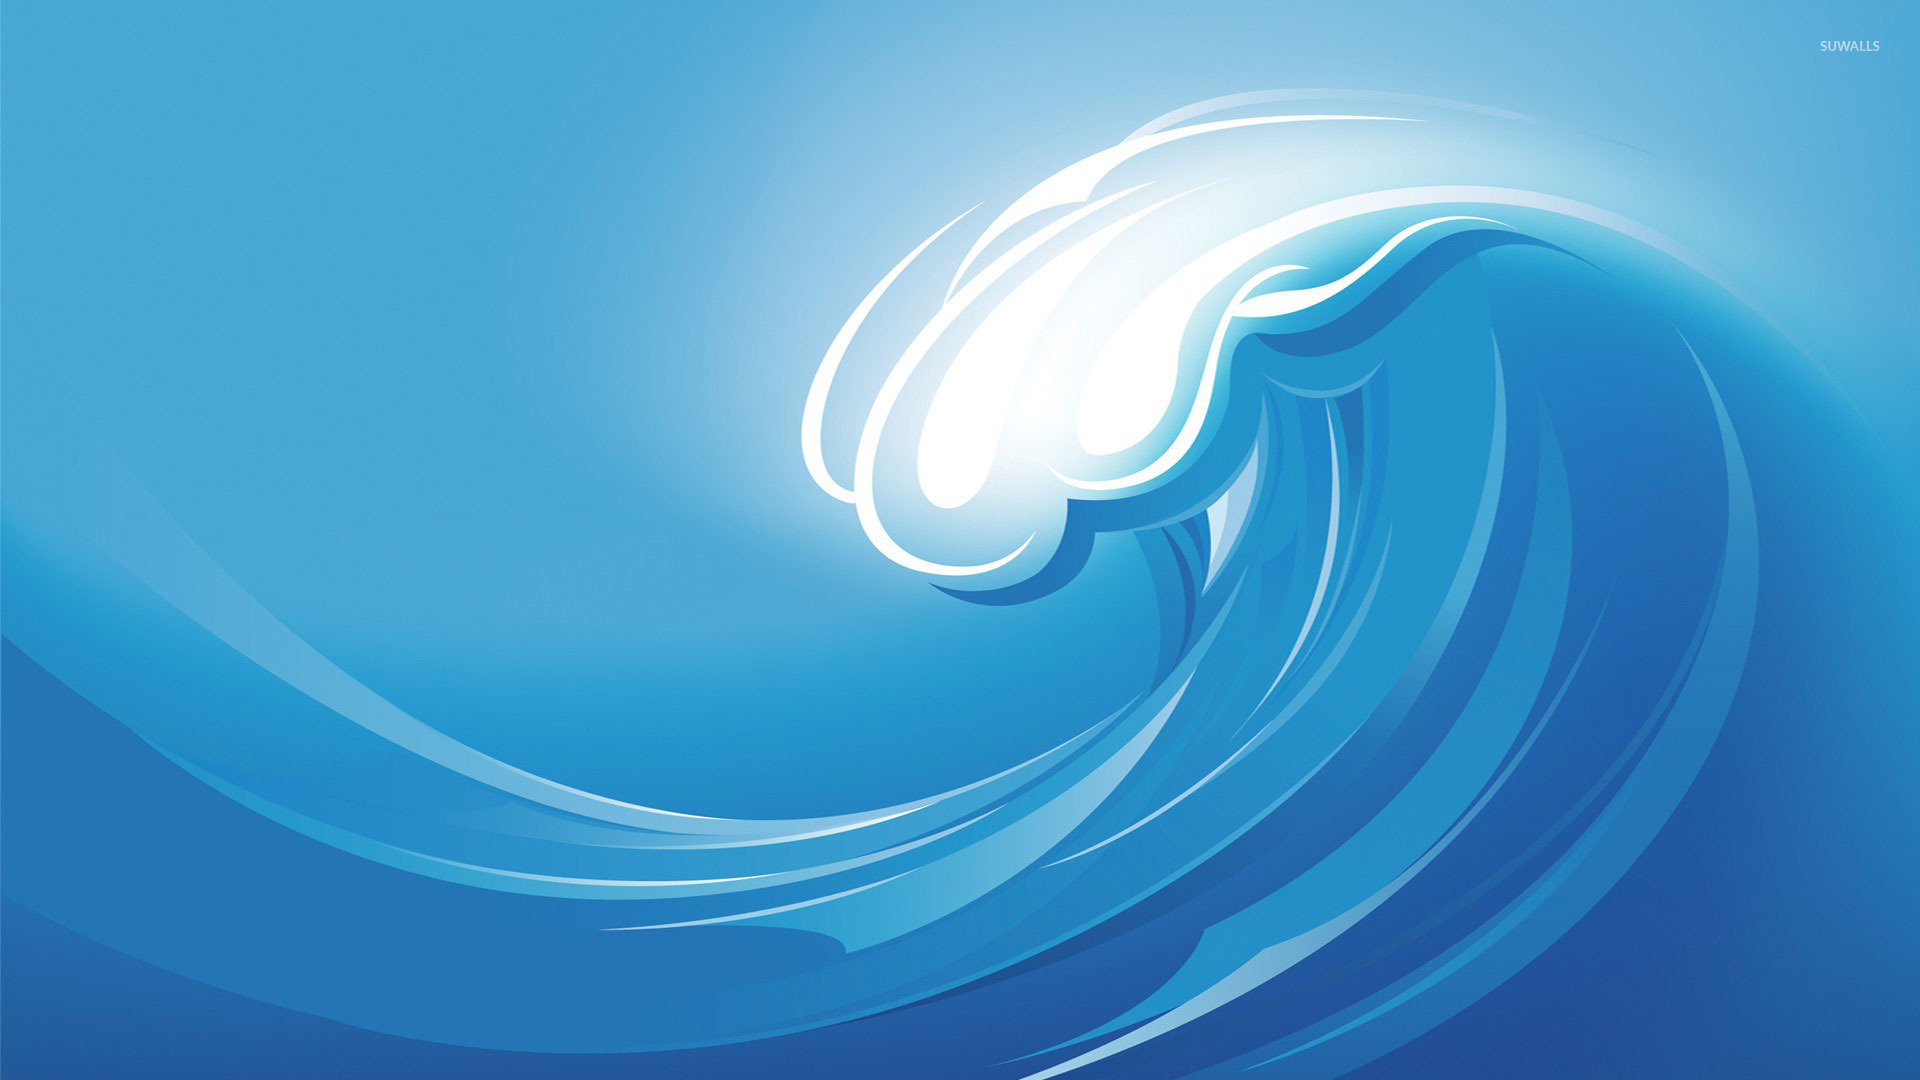 Cartoon Water Waves Wave wallpaper 1920x1080 jpg 1920x1080